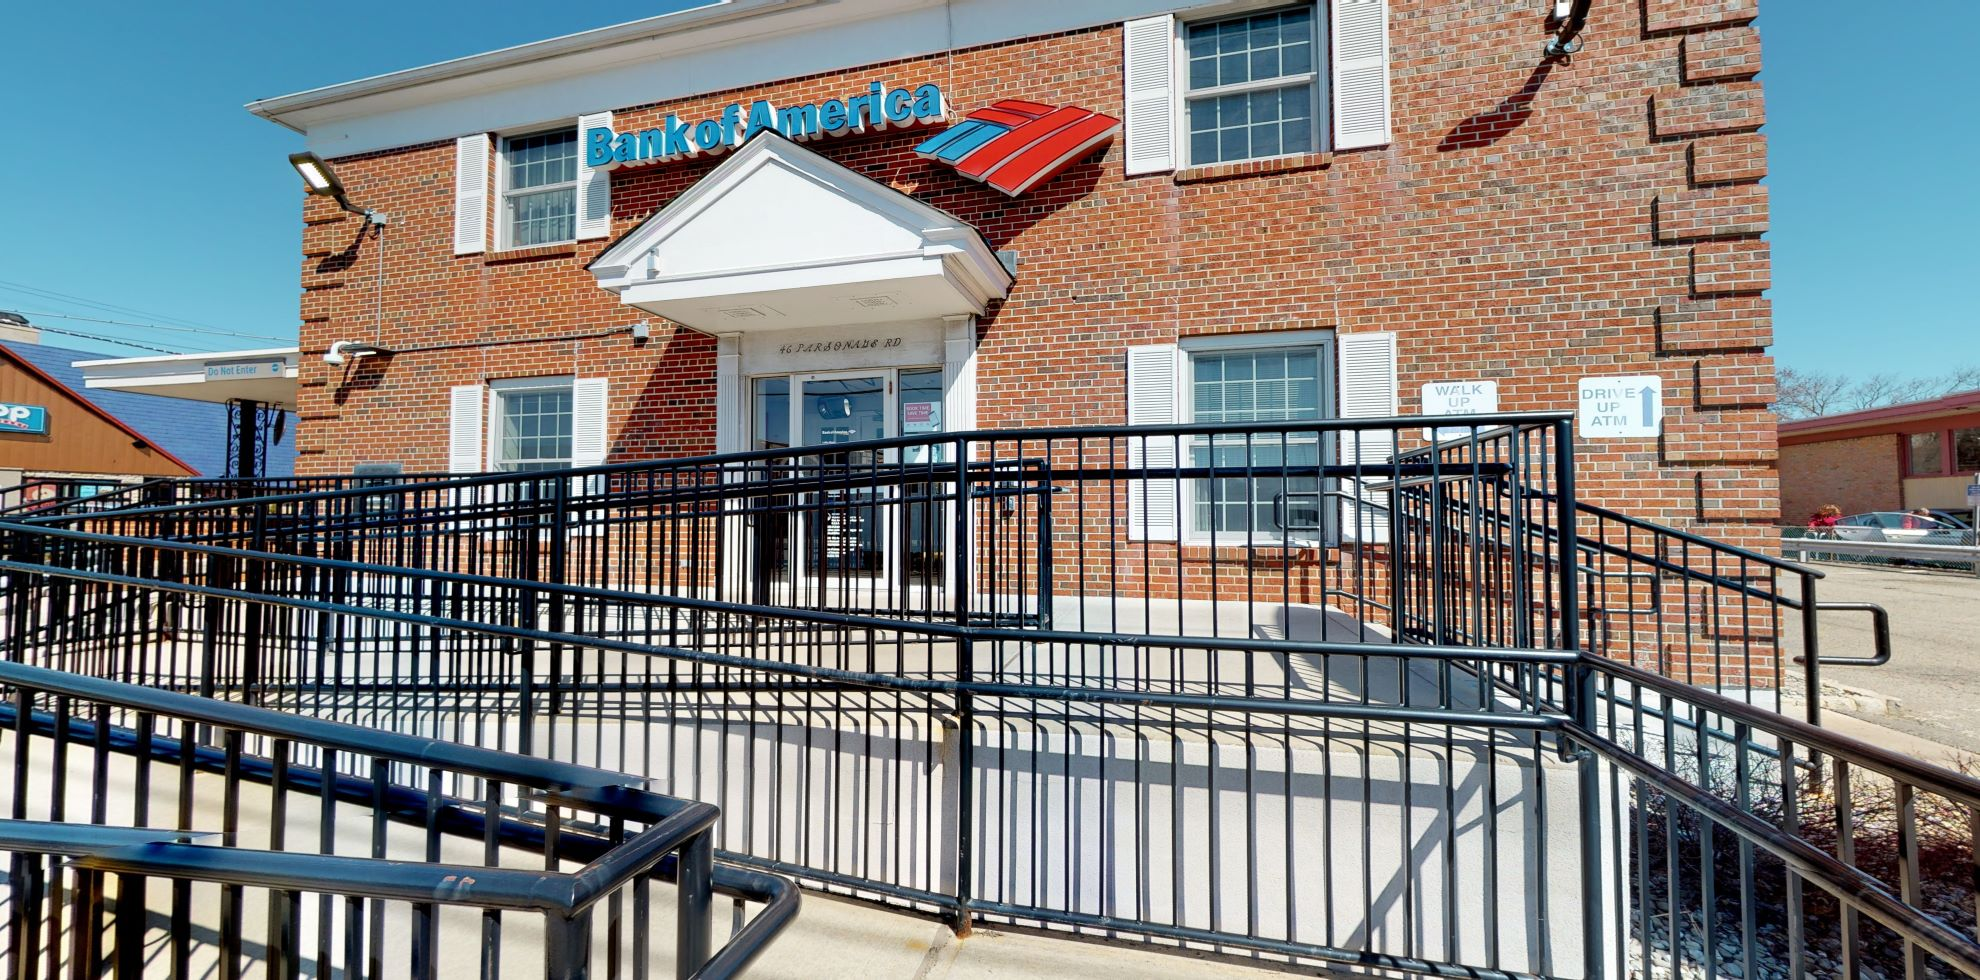 Bank of America financial center with drive-thru ATM | 46 Parsonage Rd, Edison, NJ 08837